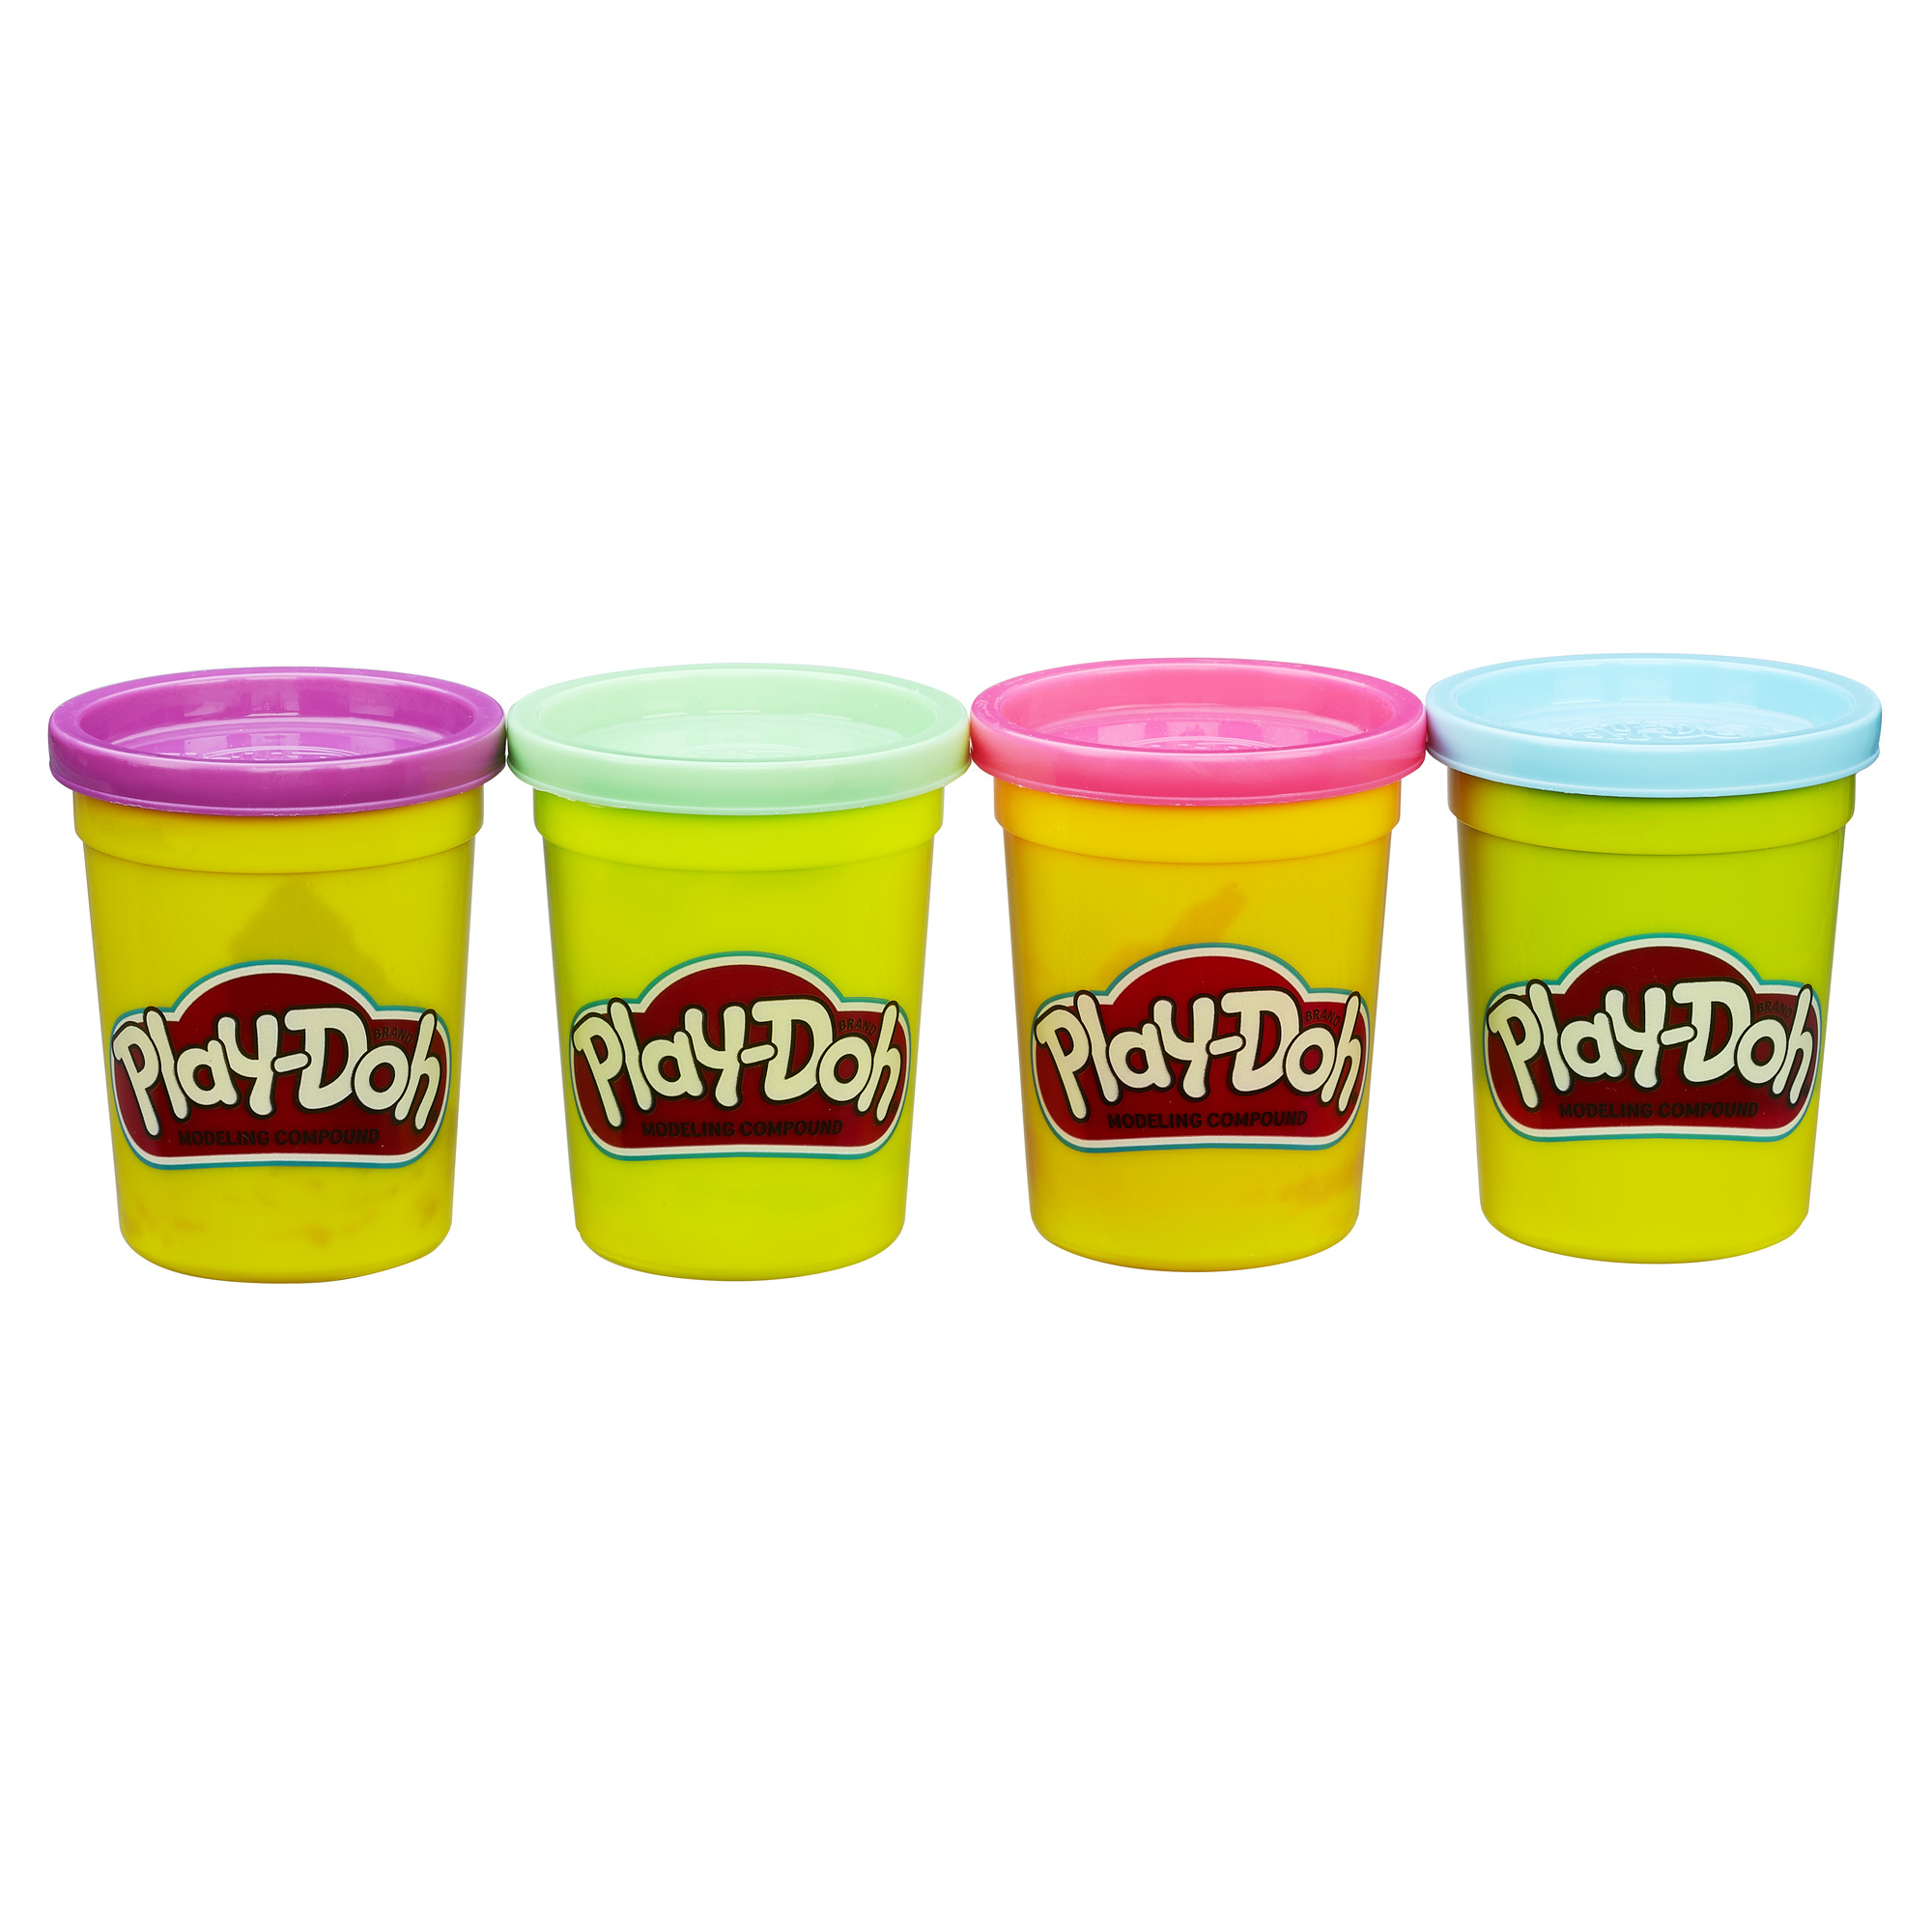 Play-Doh Pack of Bold Colors: Purple, Green, Pink & Blue, 16 oz